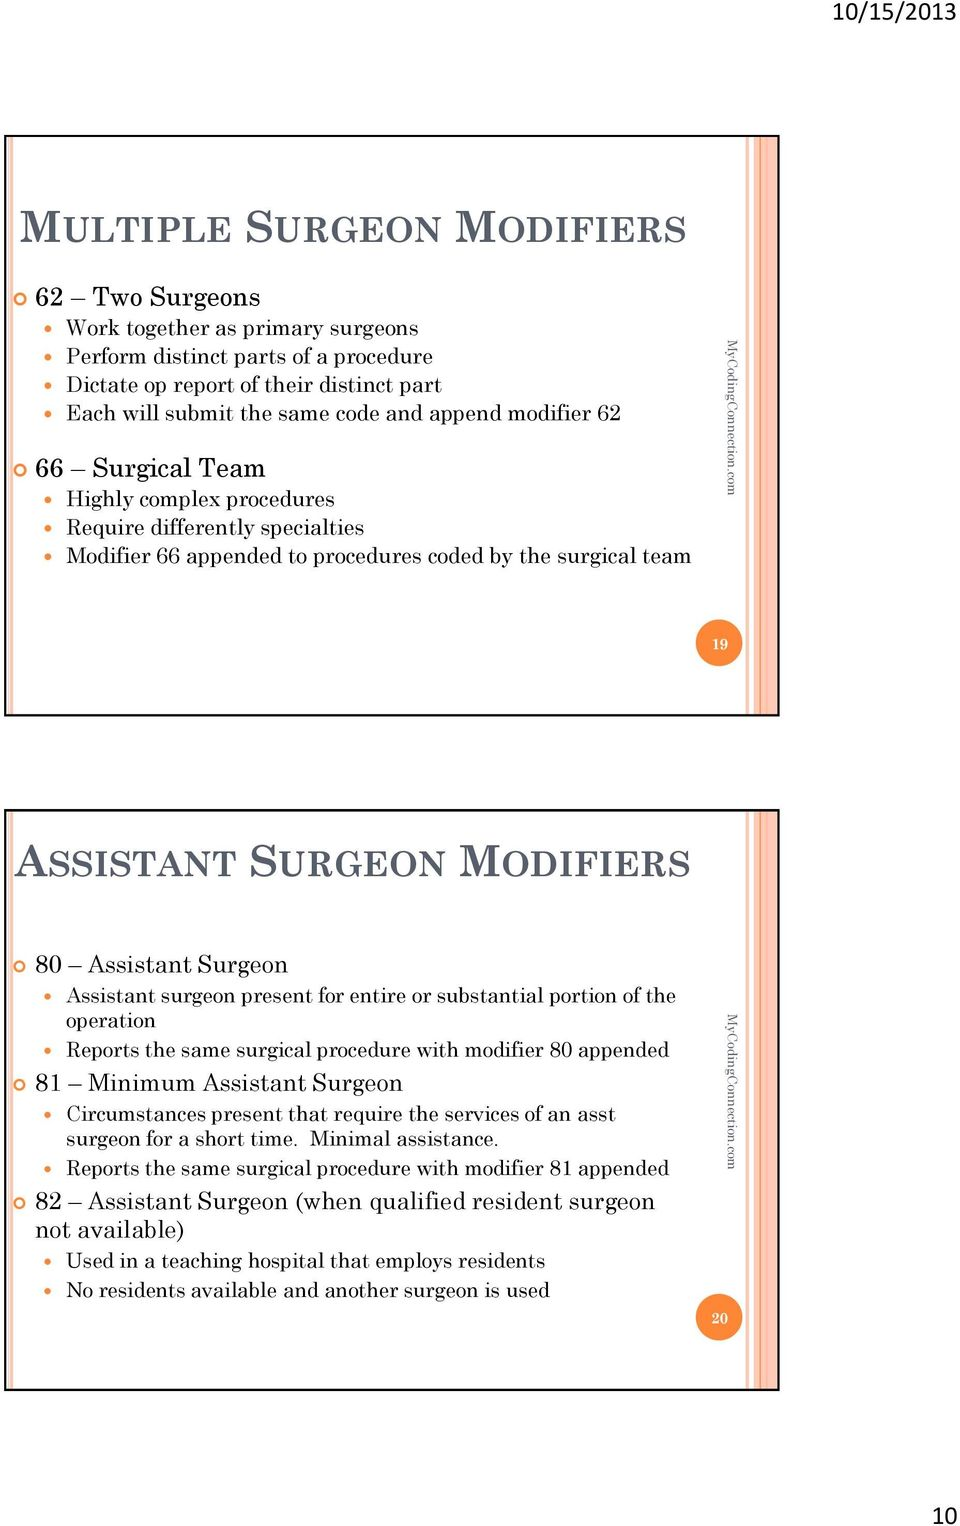 Surgeon Assistant surgeon present for entire or substantial portion of the operation Reports the same surgical procedure with modifier 80 appended 81 Minimum Assistant Surgeon Circumstances present